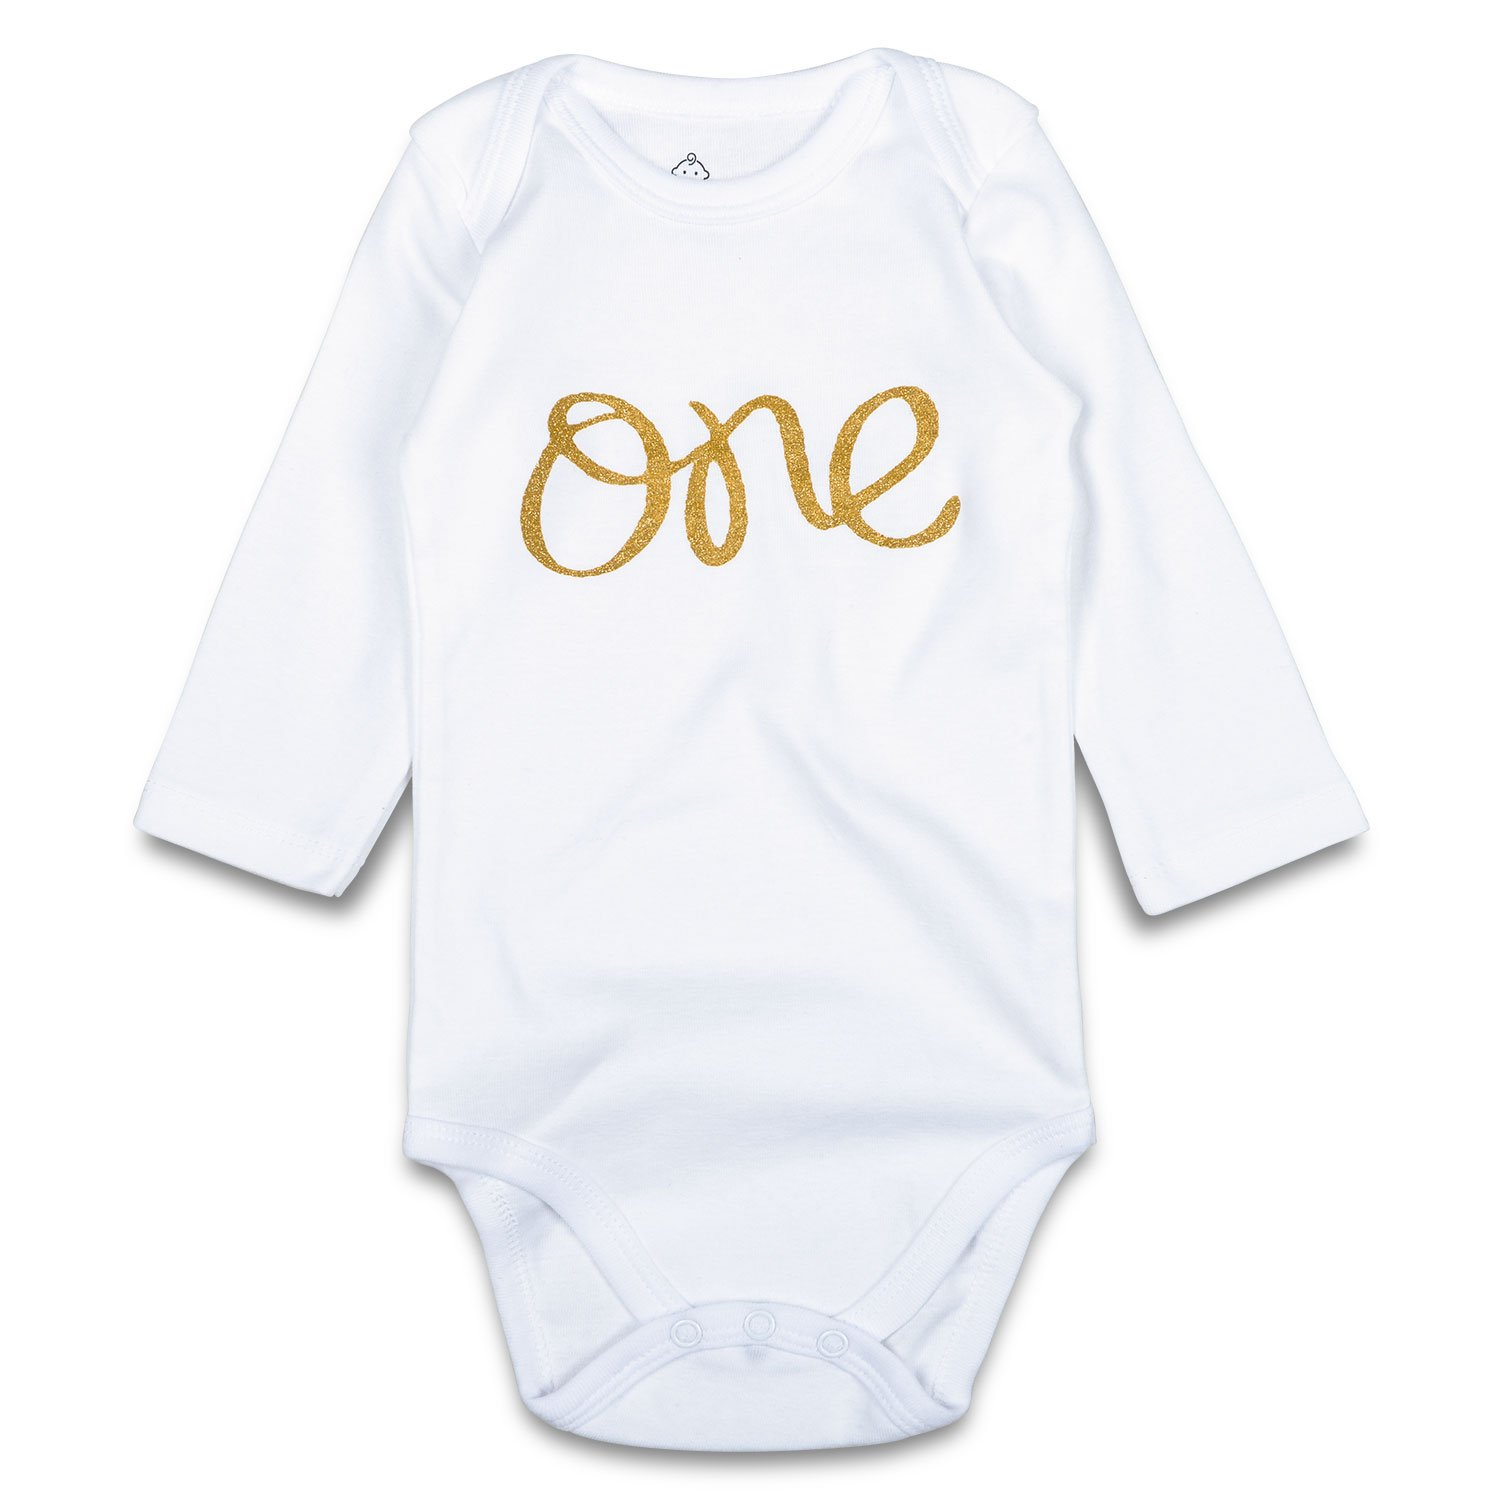 OPAWO Baby Girls Boys First Birthday Bodysuit Glitter Gold One 1st Birthday Outfit